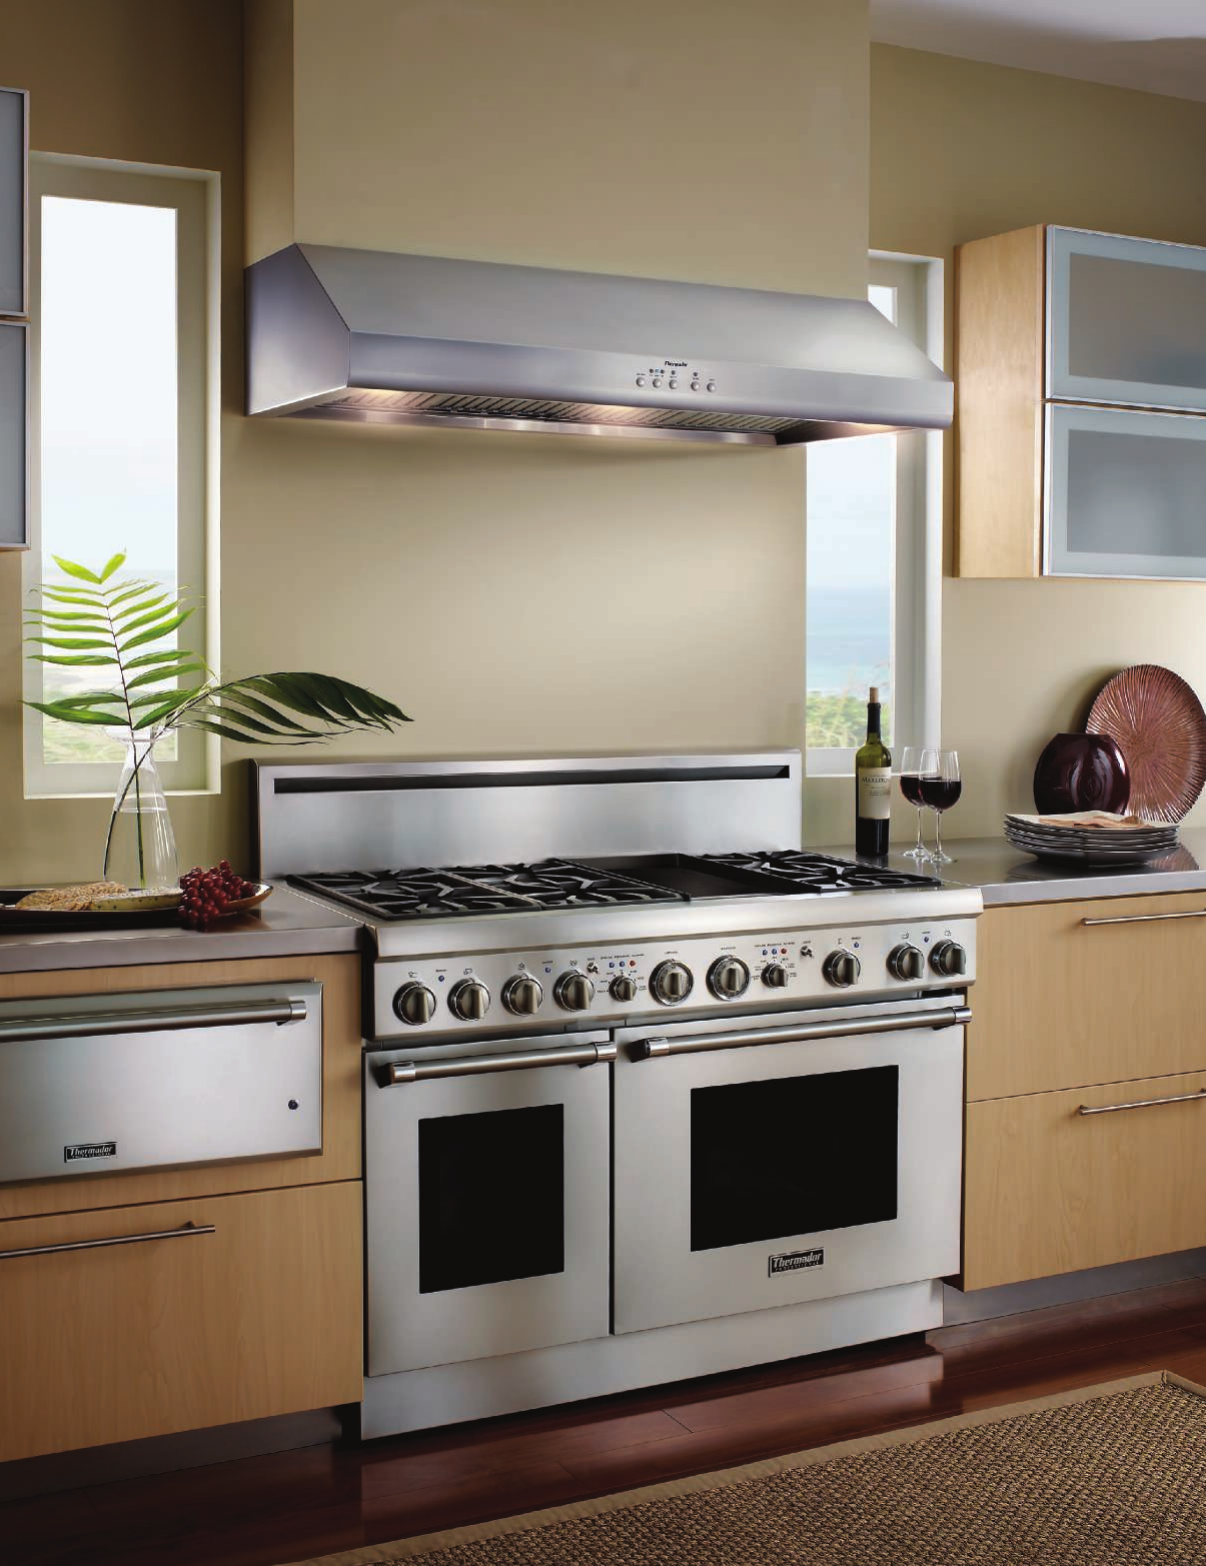 introduces professional of microwave convection makes who lovely thermador grill new drawer inspirational ovens